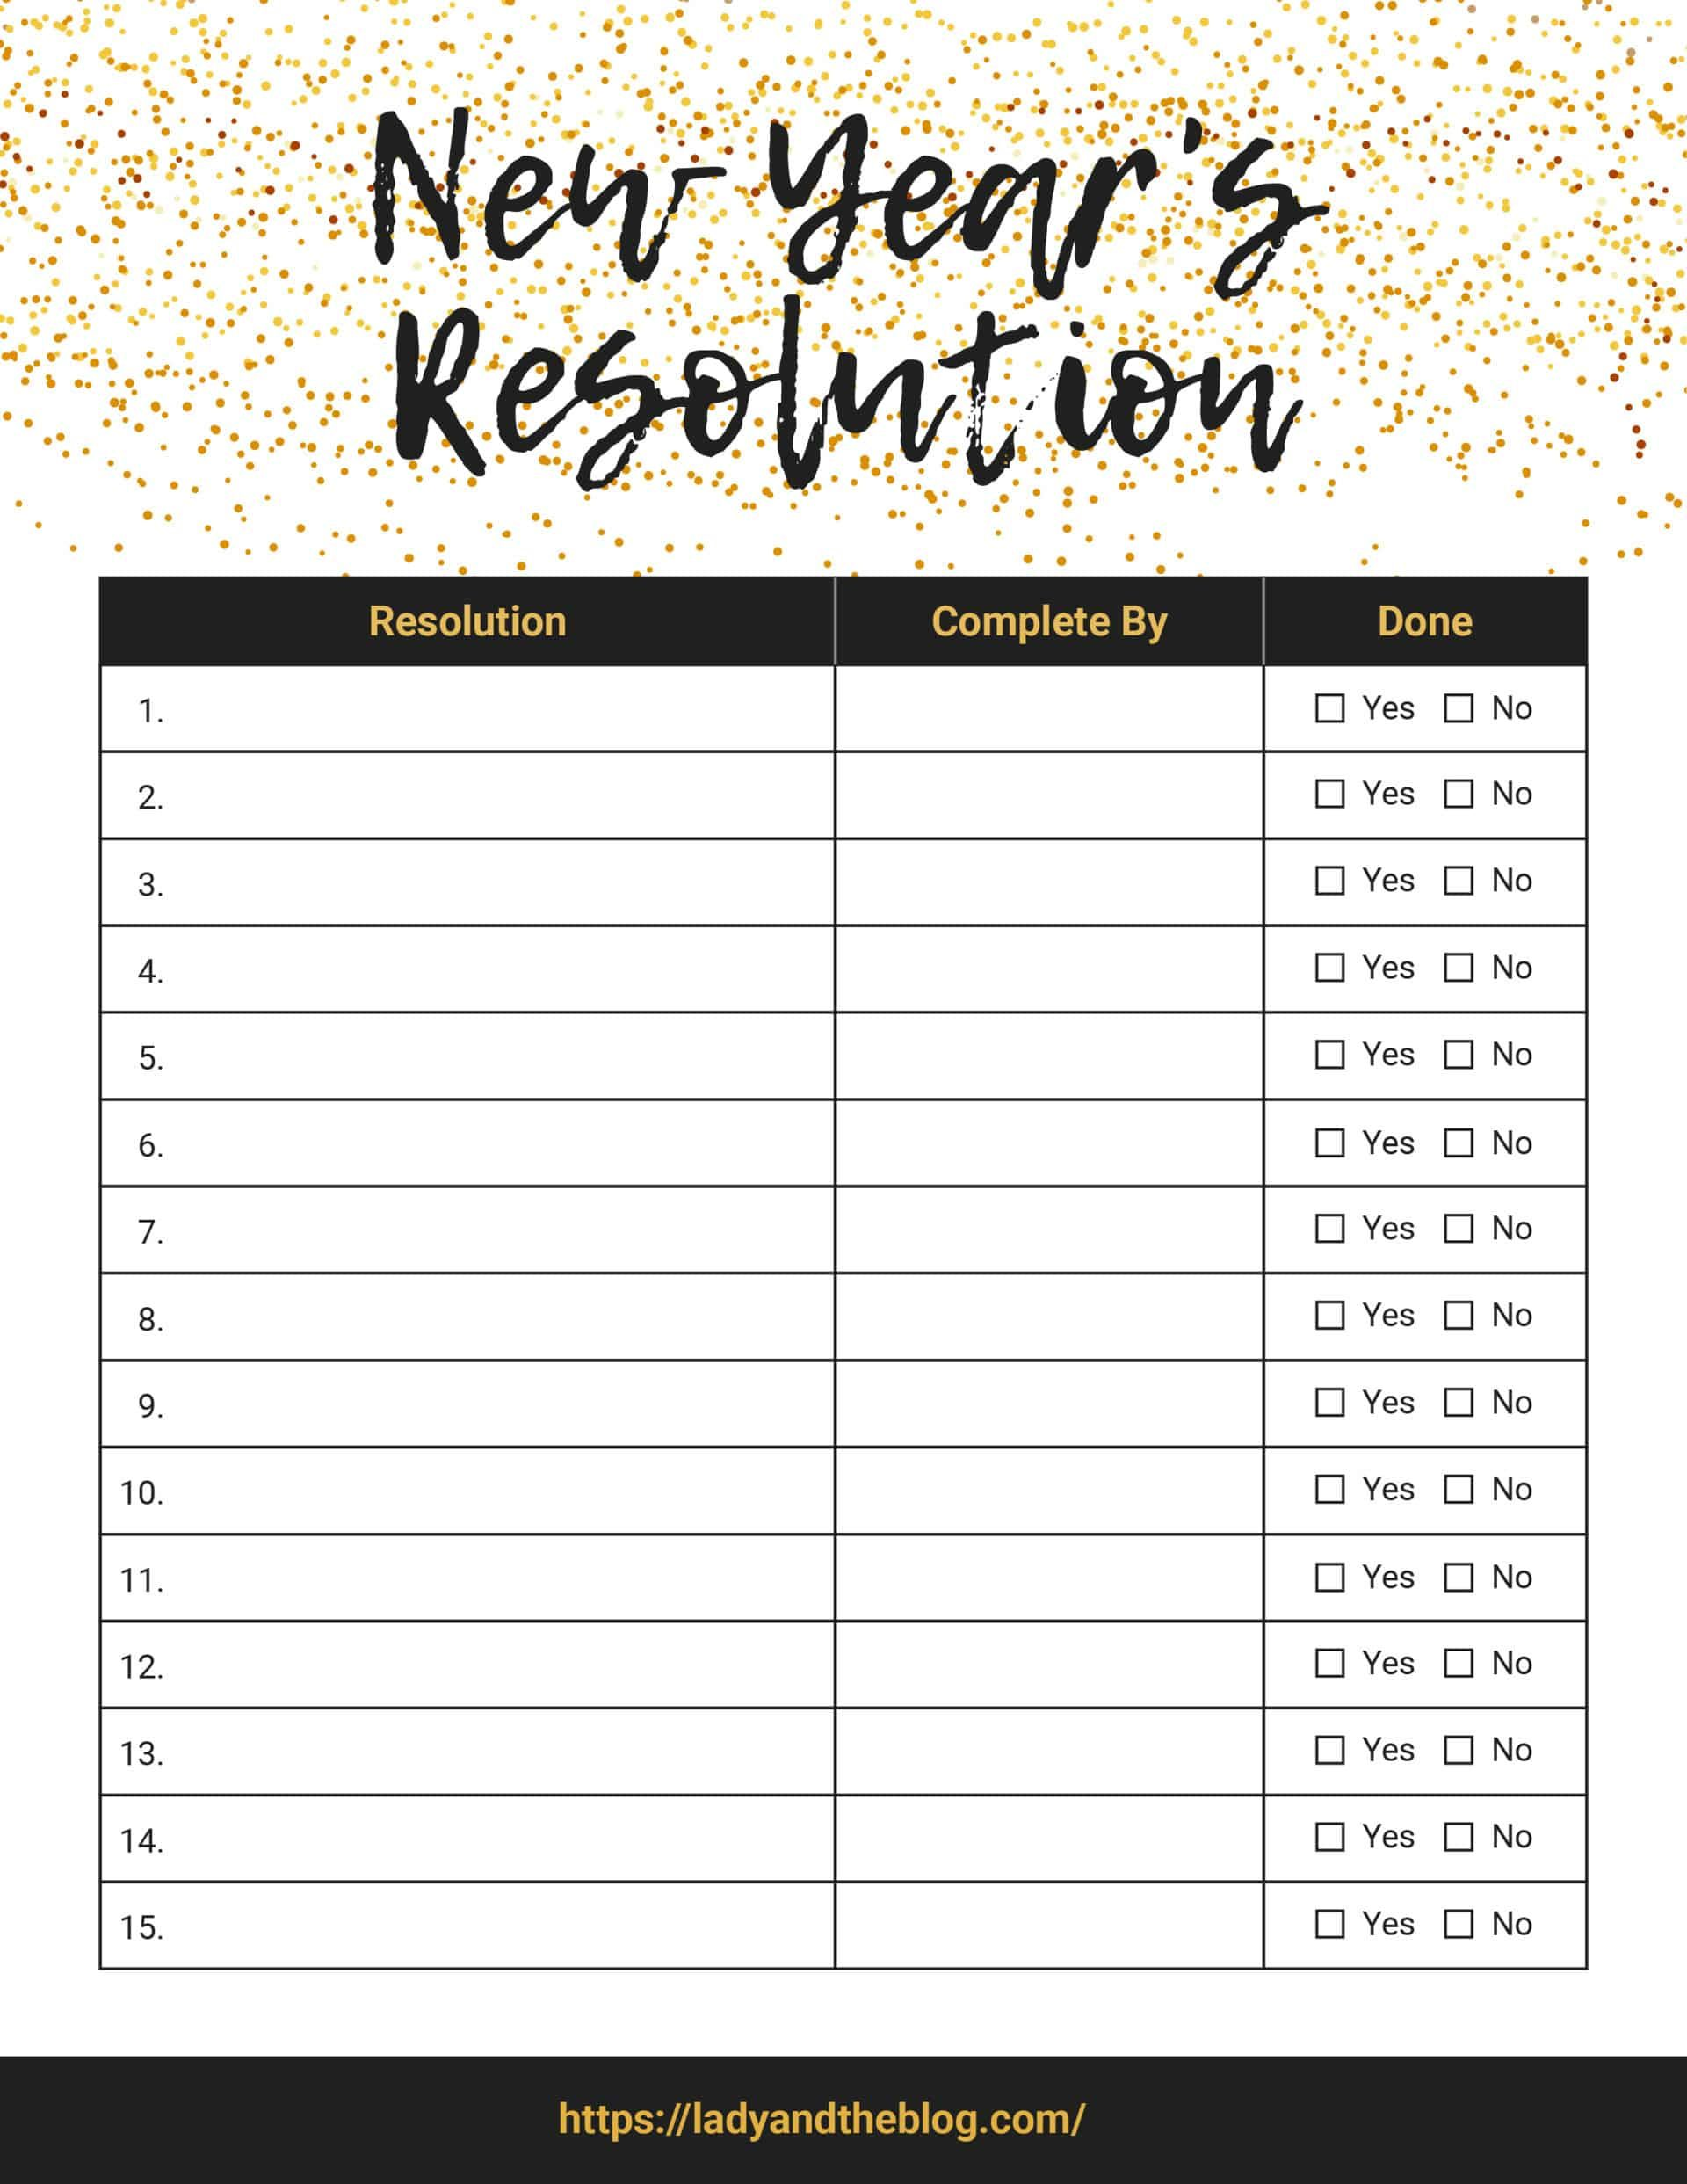 New Year S Resolution List Free Promise Printable Here New Years Resolution List Resolution List New Years Resolution